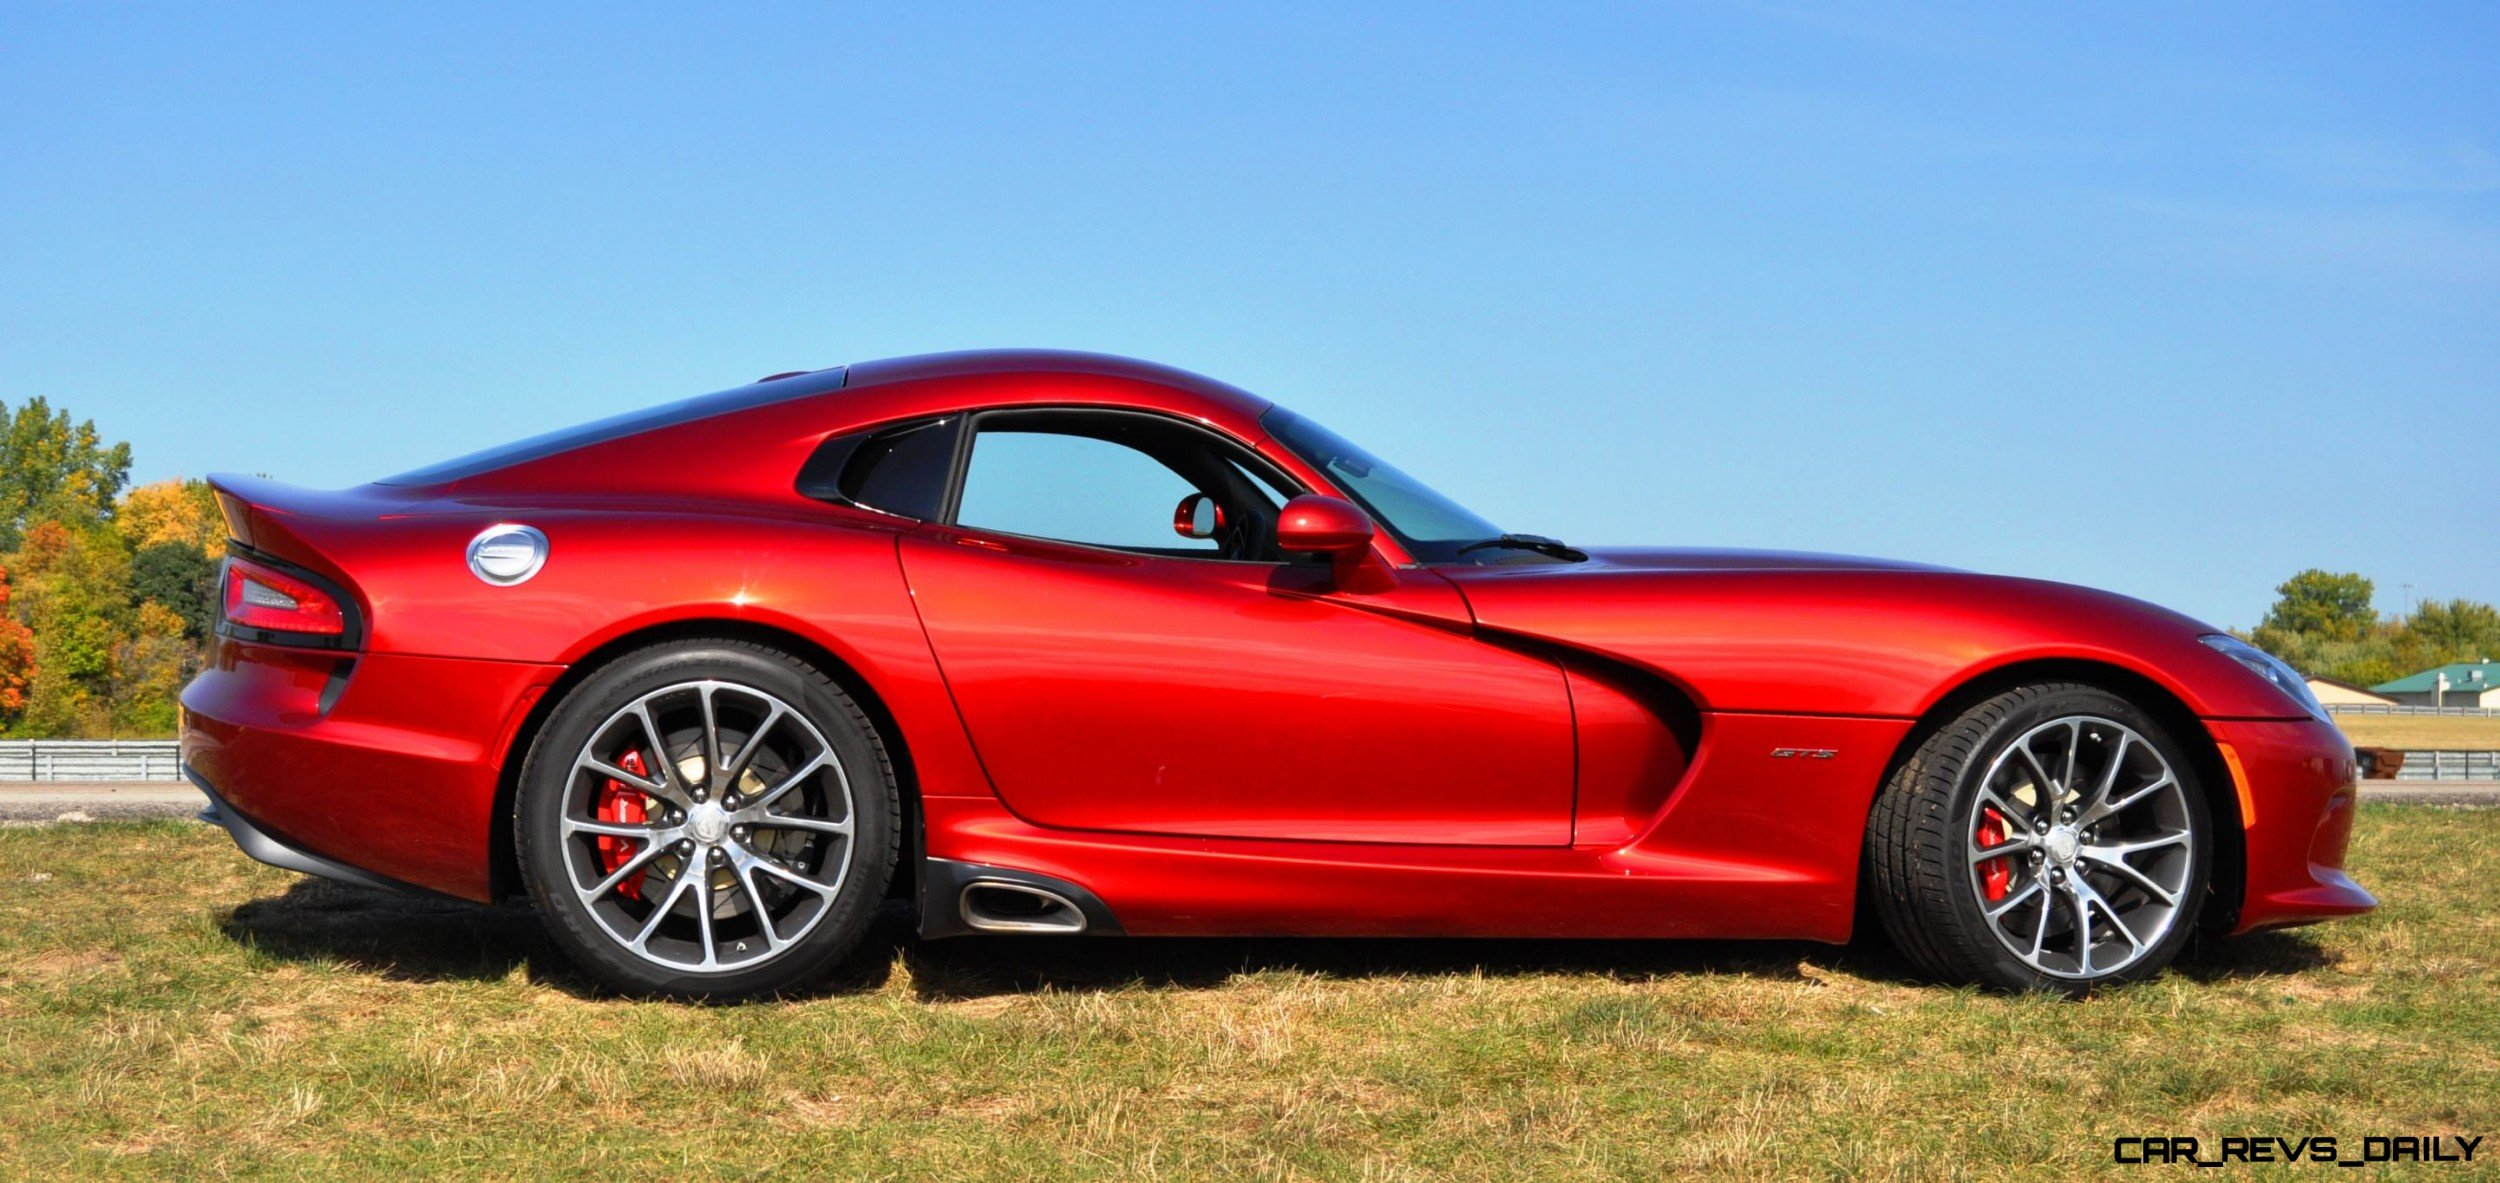 CarRevsDaily.com - 2014 SRT Viper GTS - Huge Wallpapers10